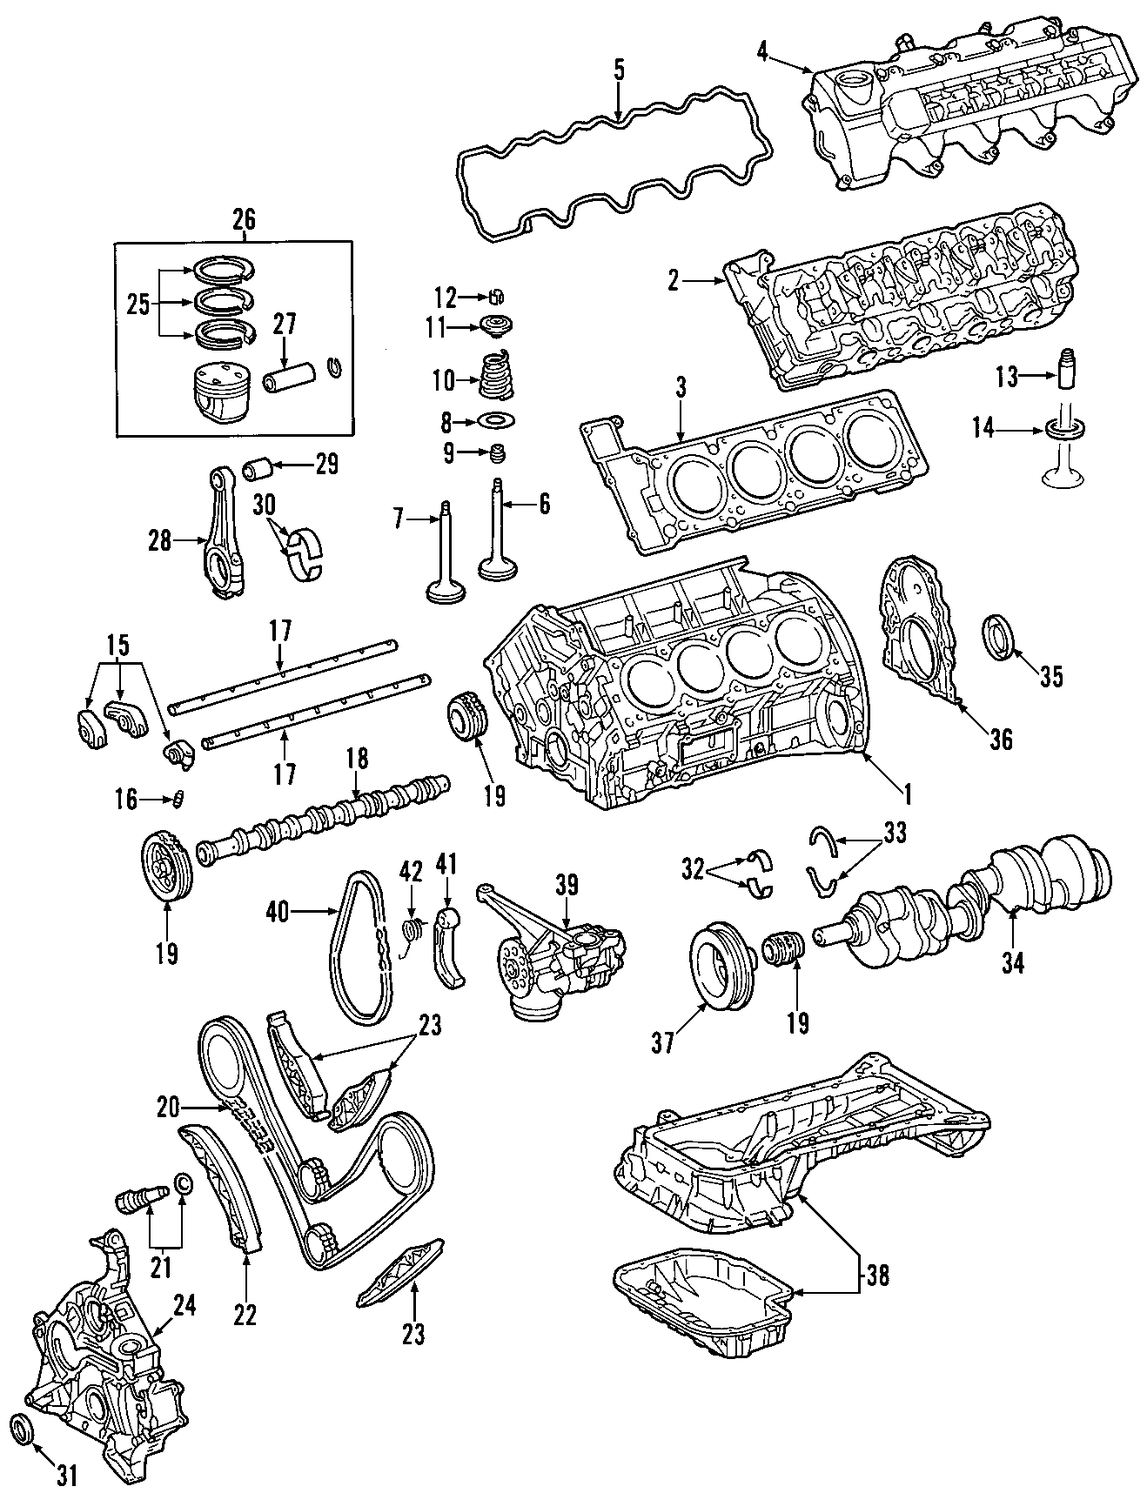 Marine 4 3l Vortec Engine Diagram Real Wiring Old Fashioned 3 Ensign Electrical And 43 Crank Sensor Of